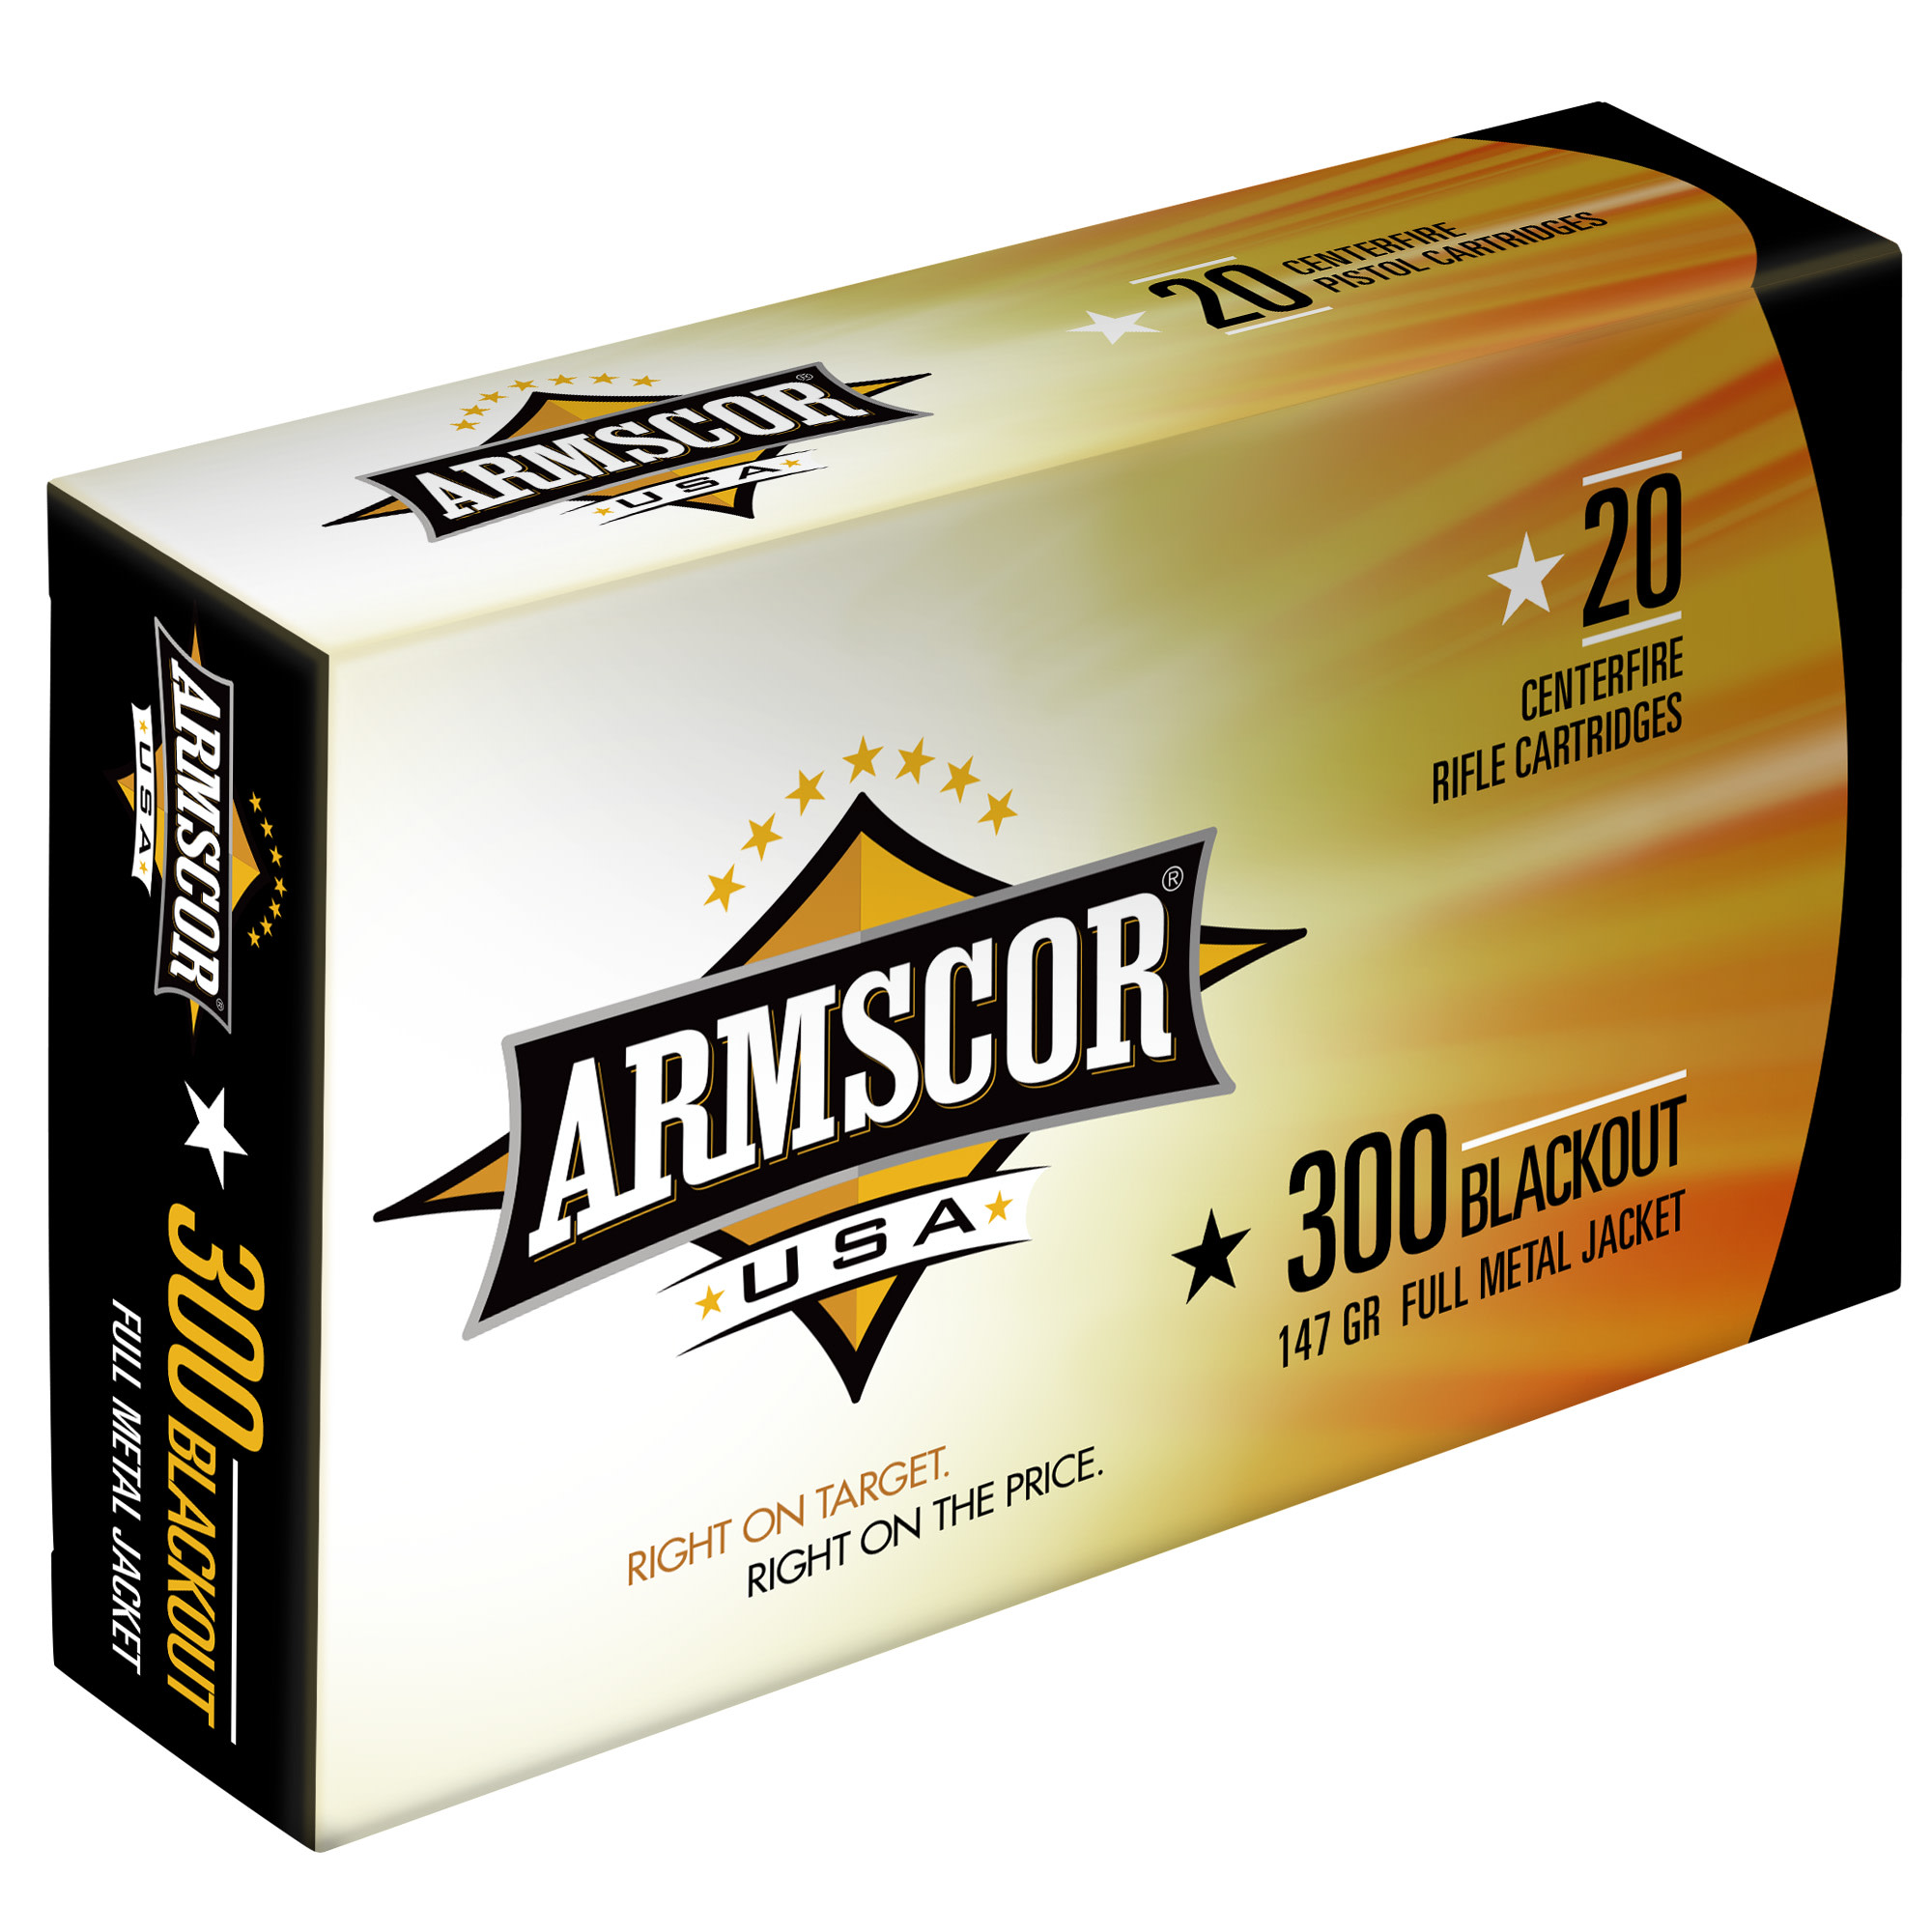 Armscor USA Ammunition 300 AAC Blackout 147GR Full Metal Jacket Per 20